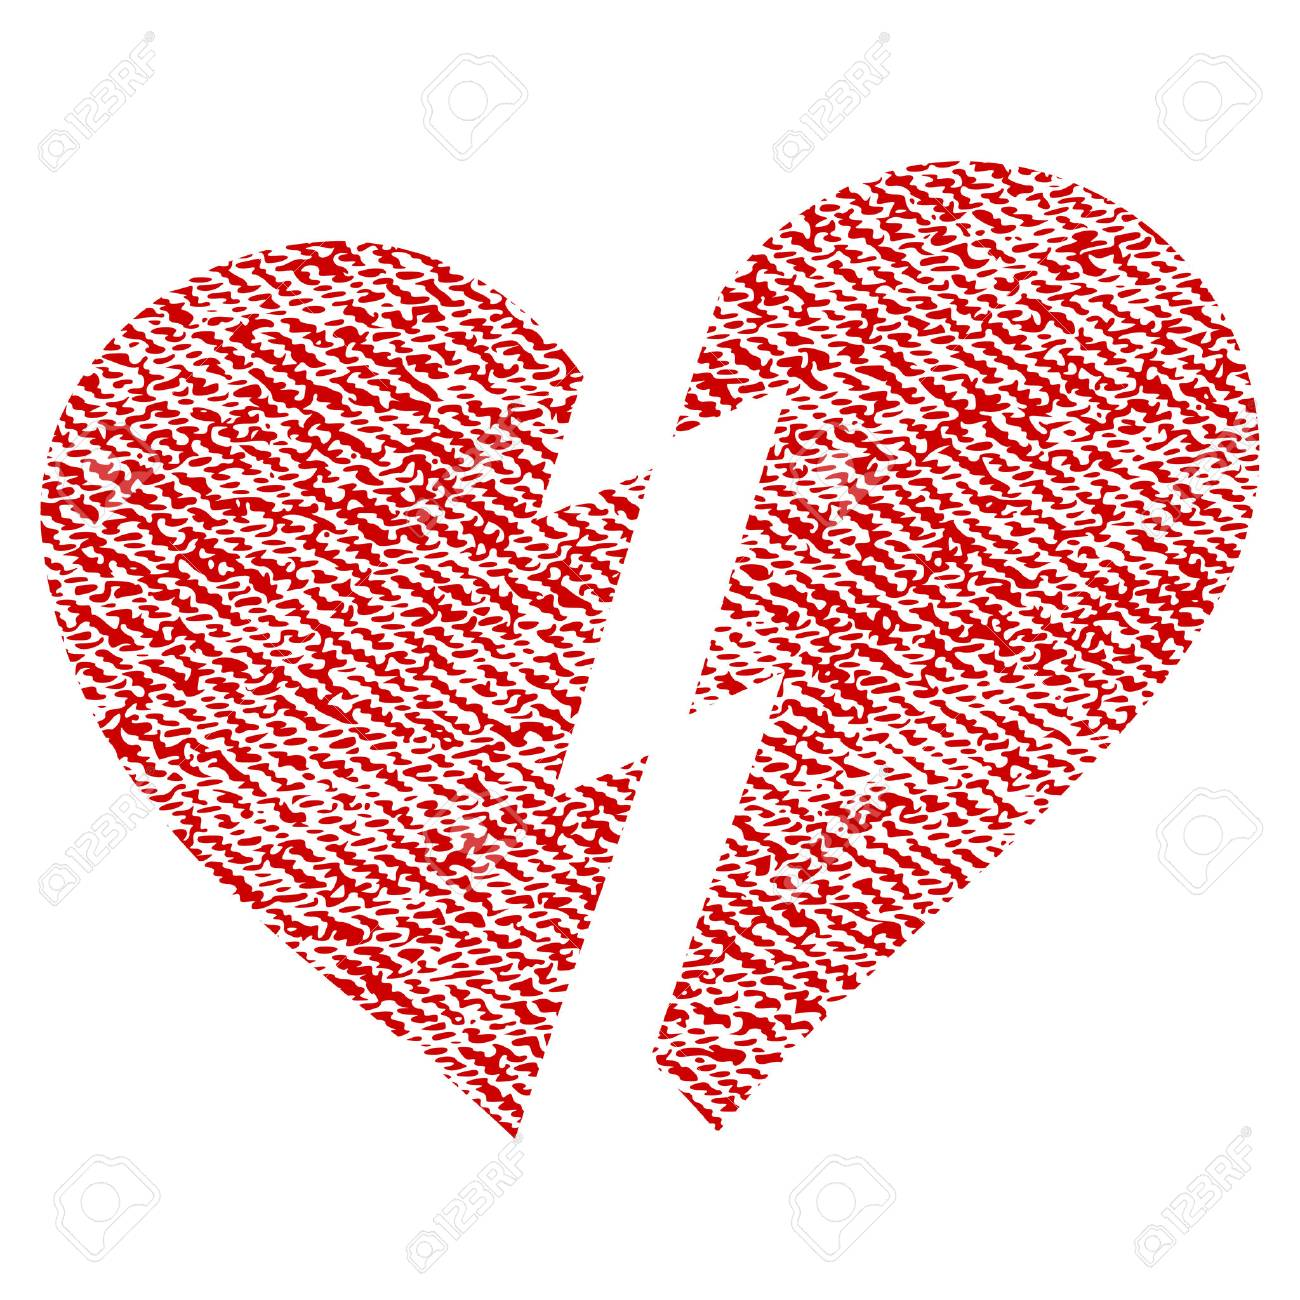 Heartbreak Text Symbol Images Meaning Of Text Symbols